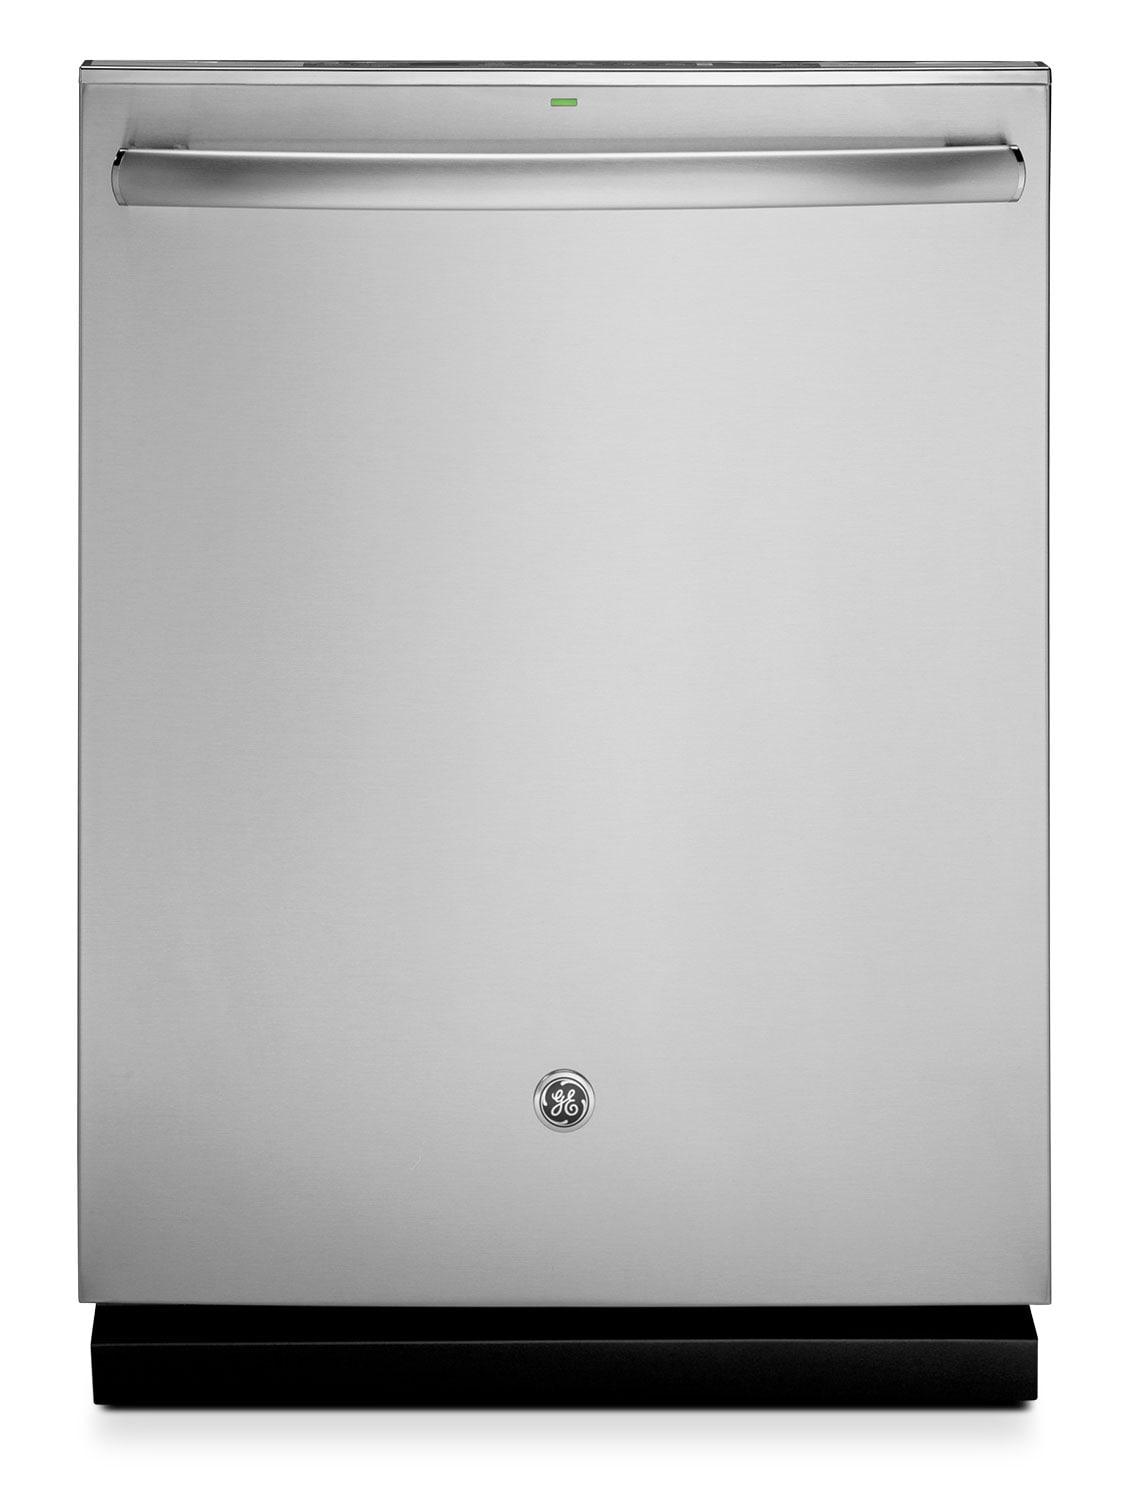 Clean-Up - GE Profile Tall-Tub Built-In Dishwasher with Hidden Controls – Stainless Steel